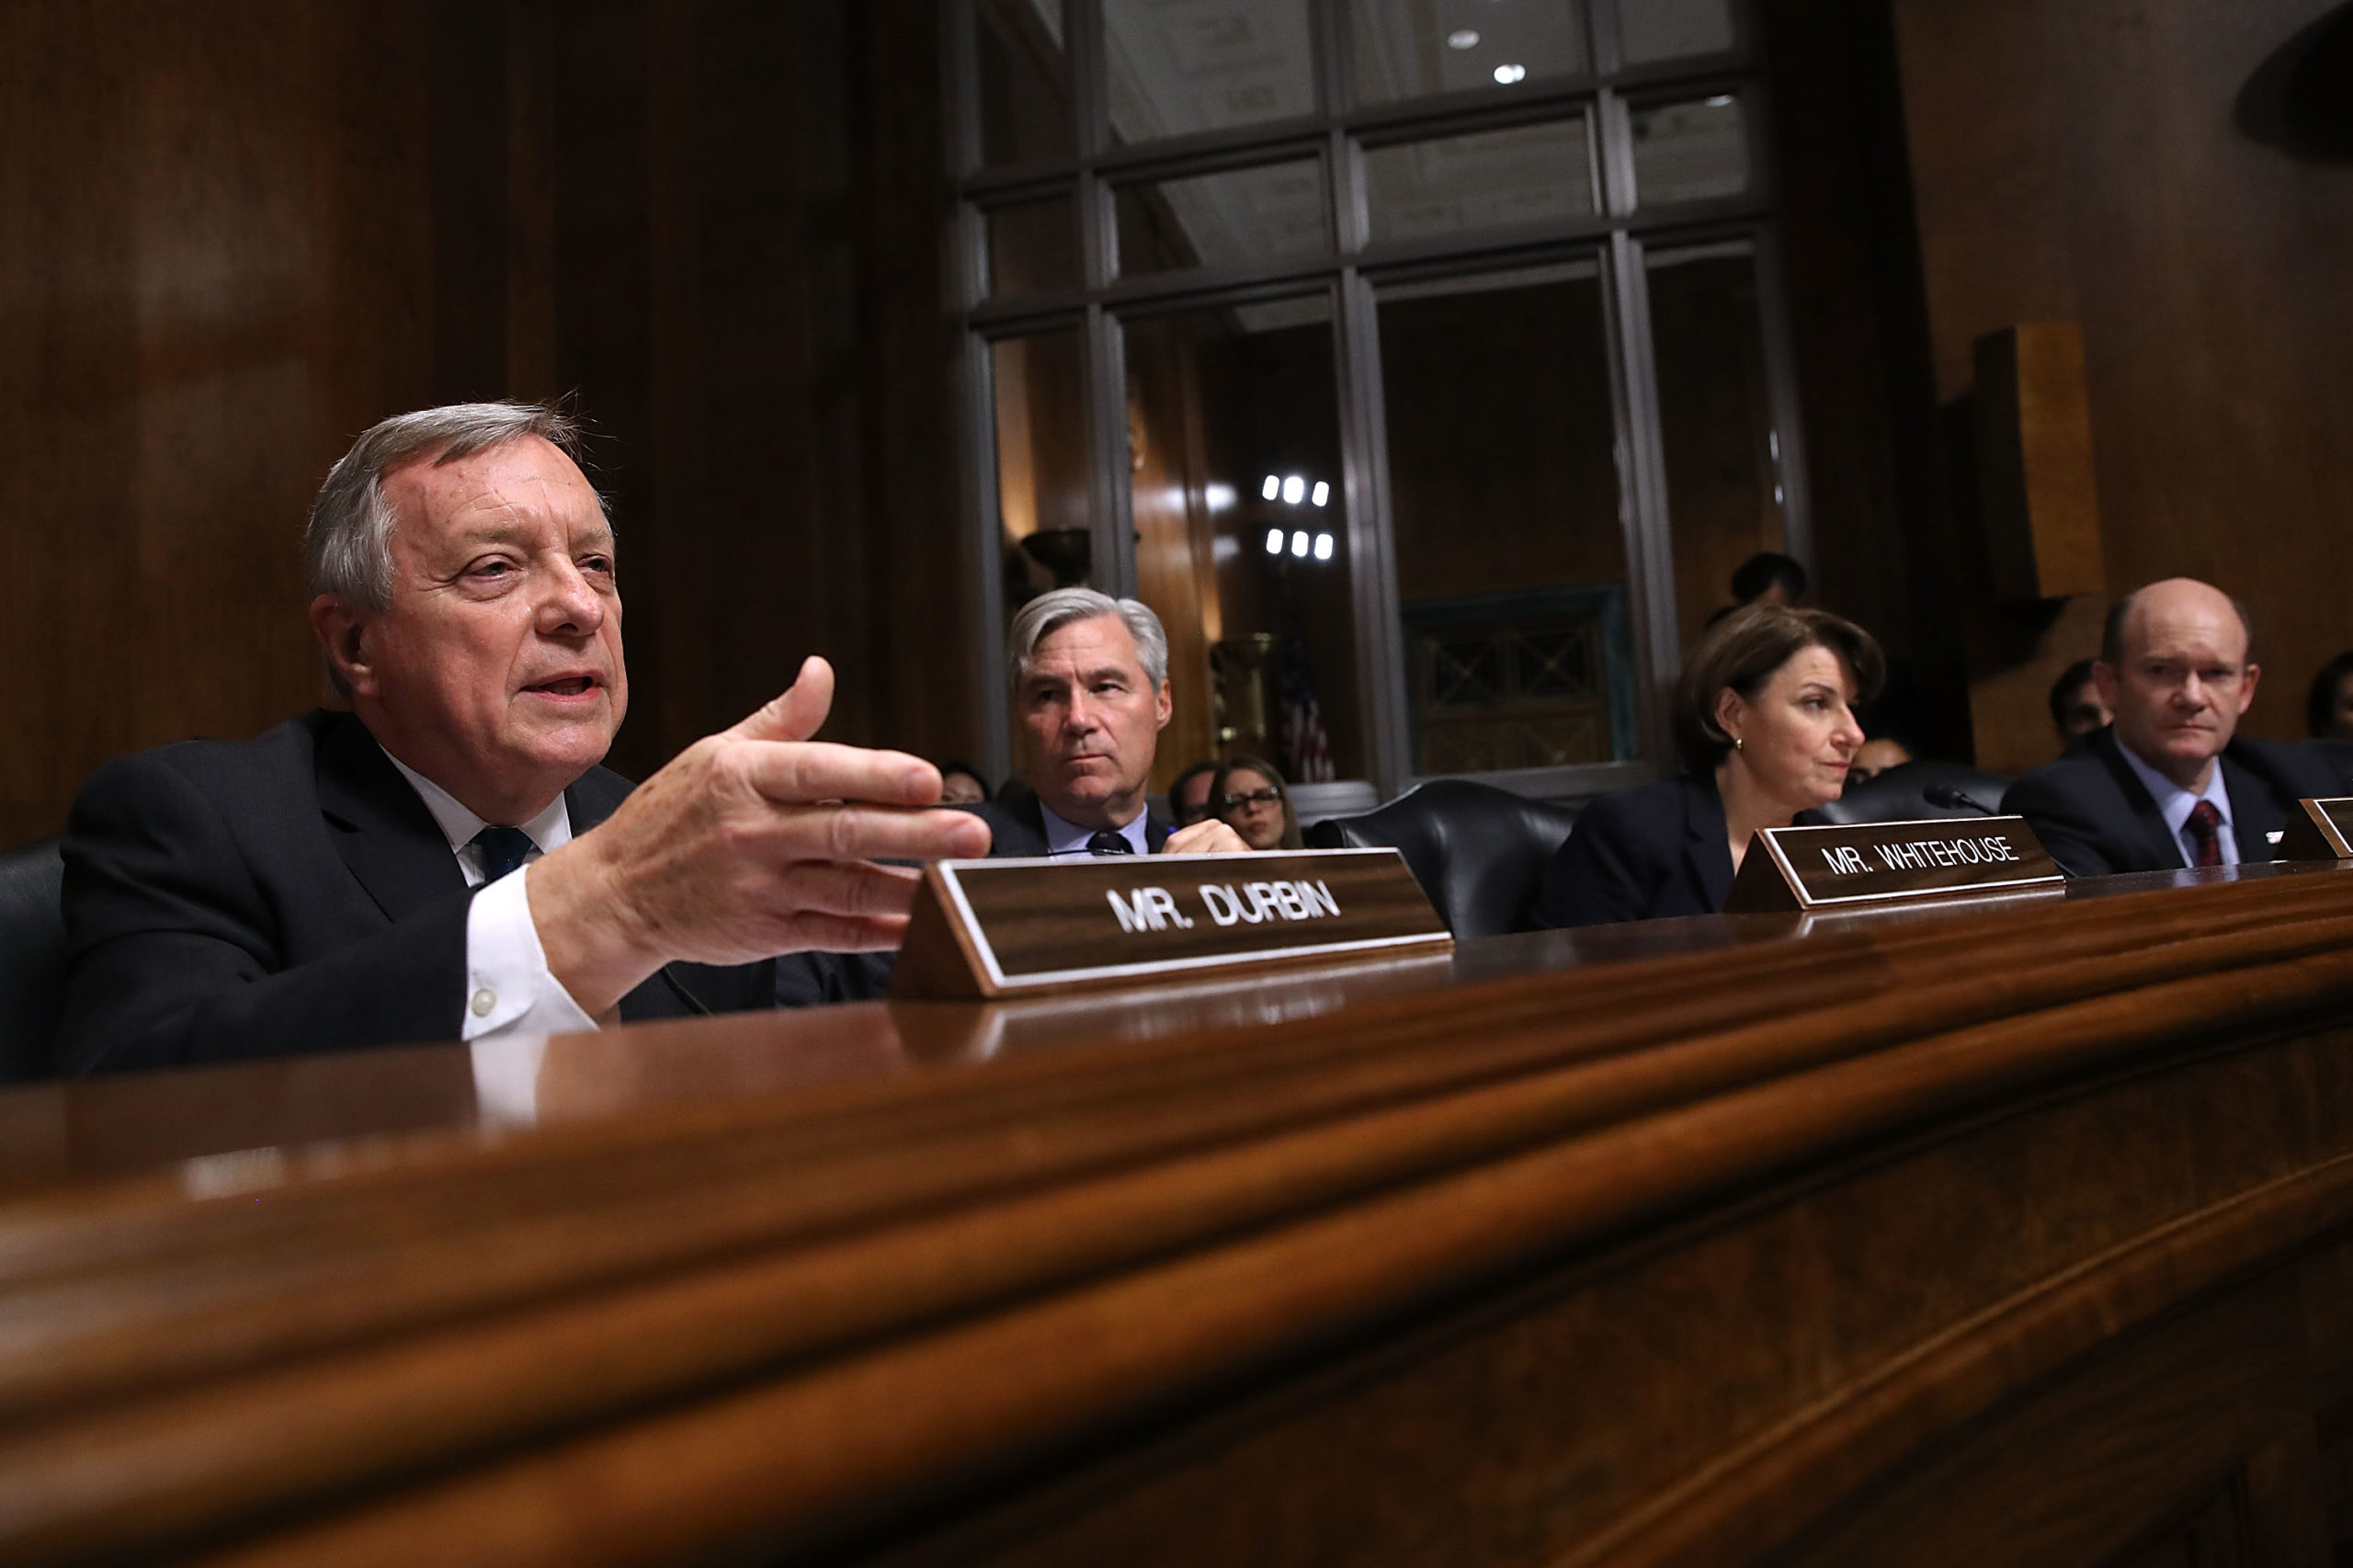 Senate Judiciary Committee members Richard Durbin, Sheldon Whitehouse, Amy Klobuchar and Chris Coons question Brett Kavanaugh during his confirmation hearing in September 2018. (Win McNamee/Getty Images)